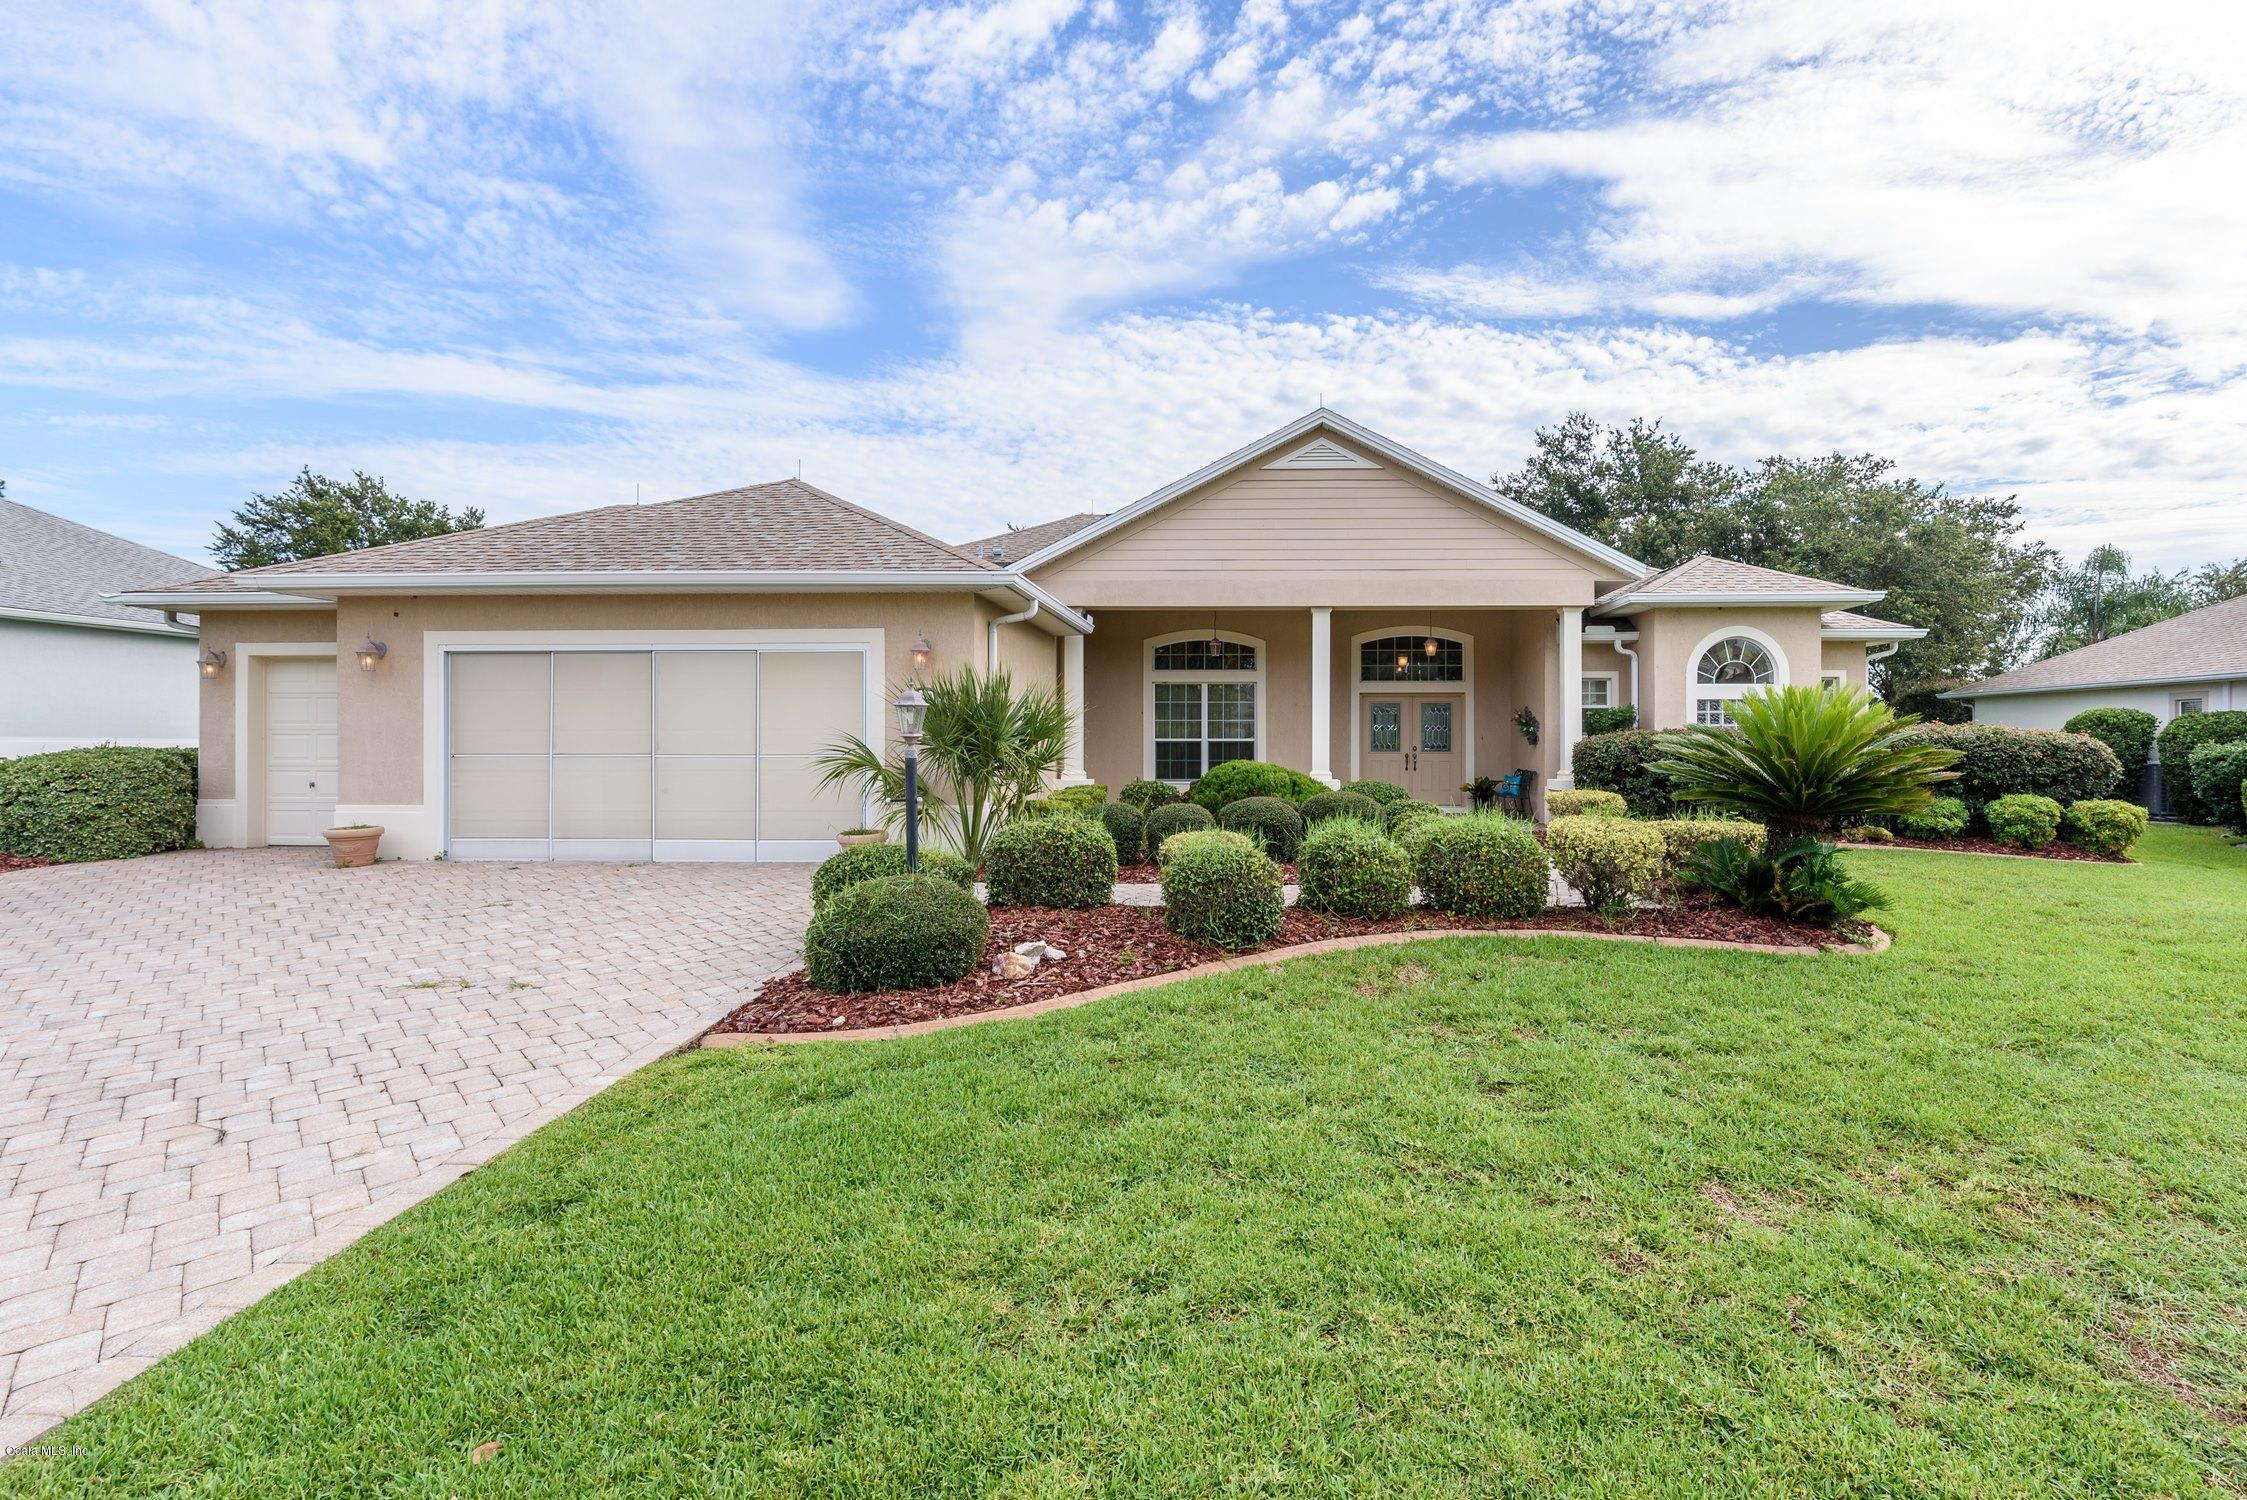 8795 SE 177TH GRASSMERE STREET, THE VILLAGES, FL 32162